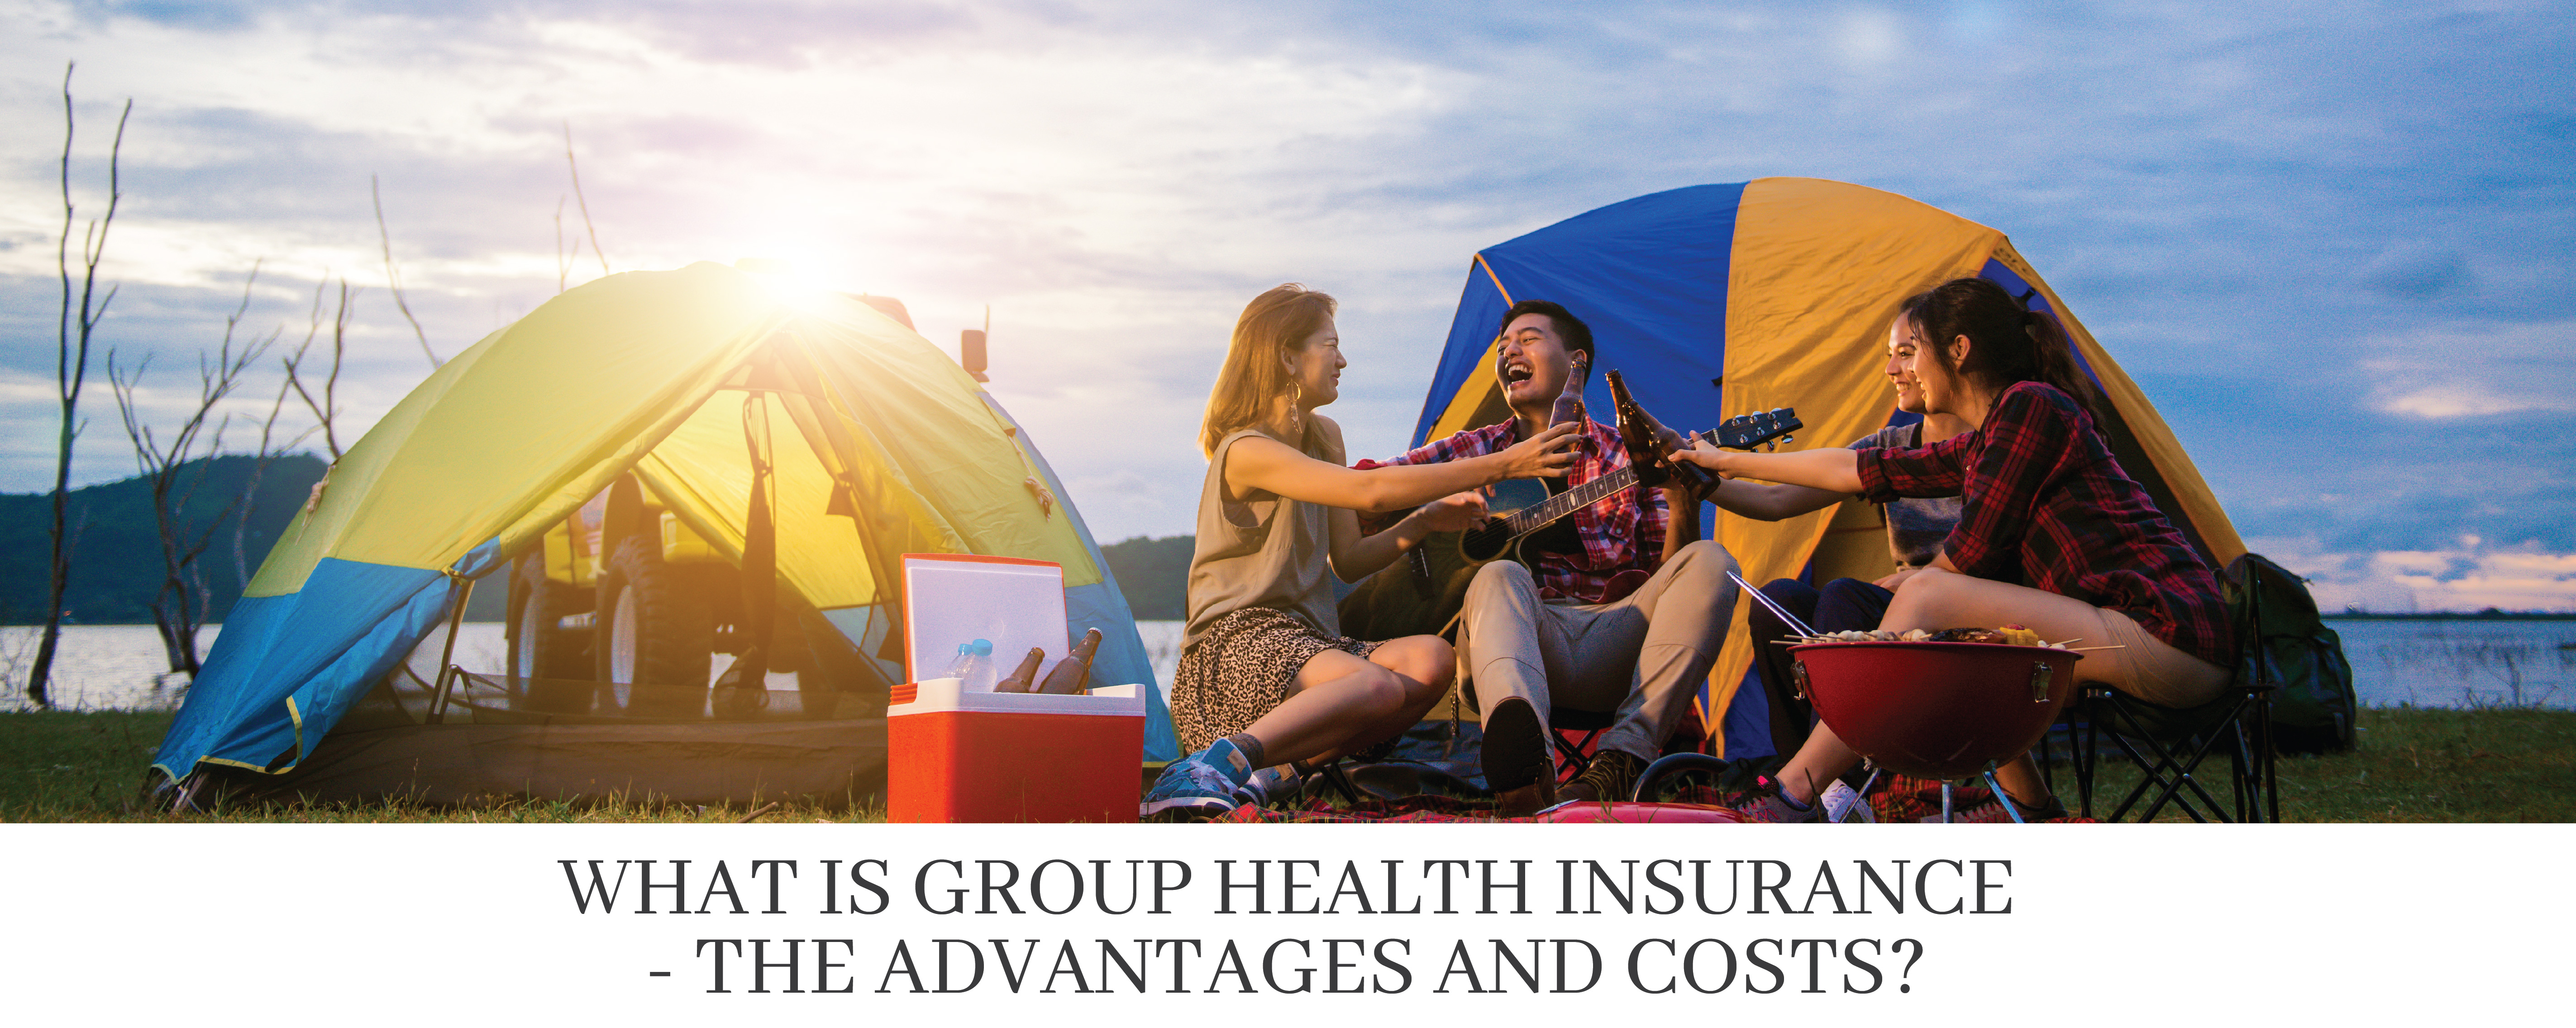 What is group health insurance, the advantages and costs?